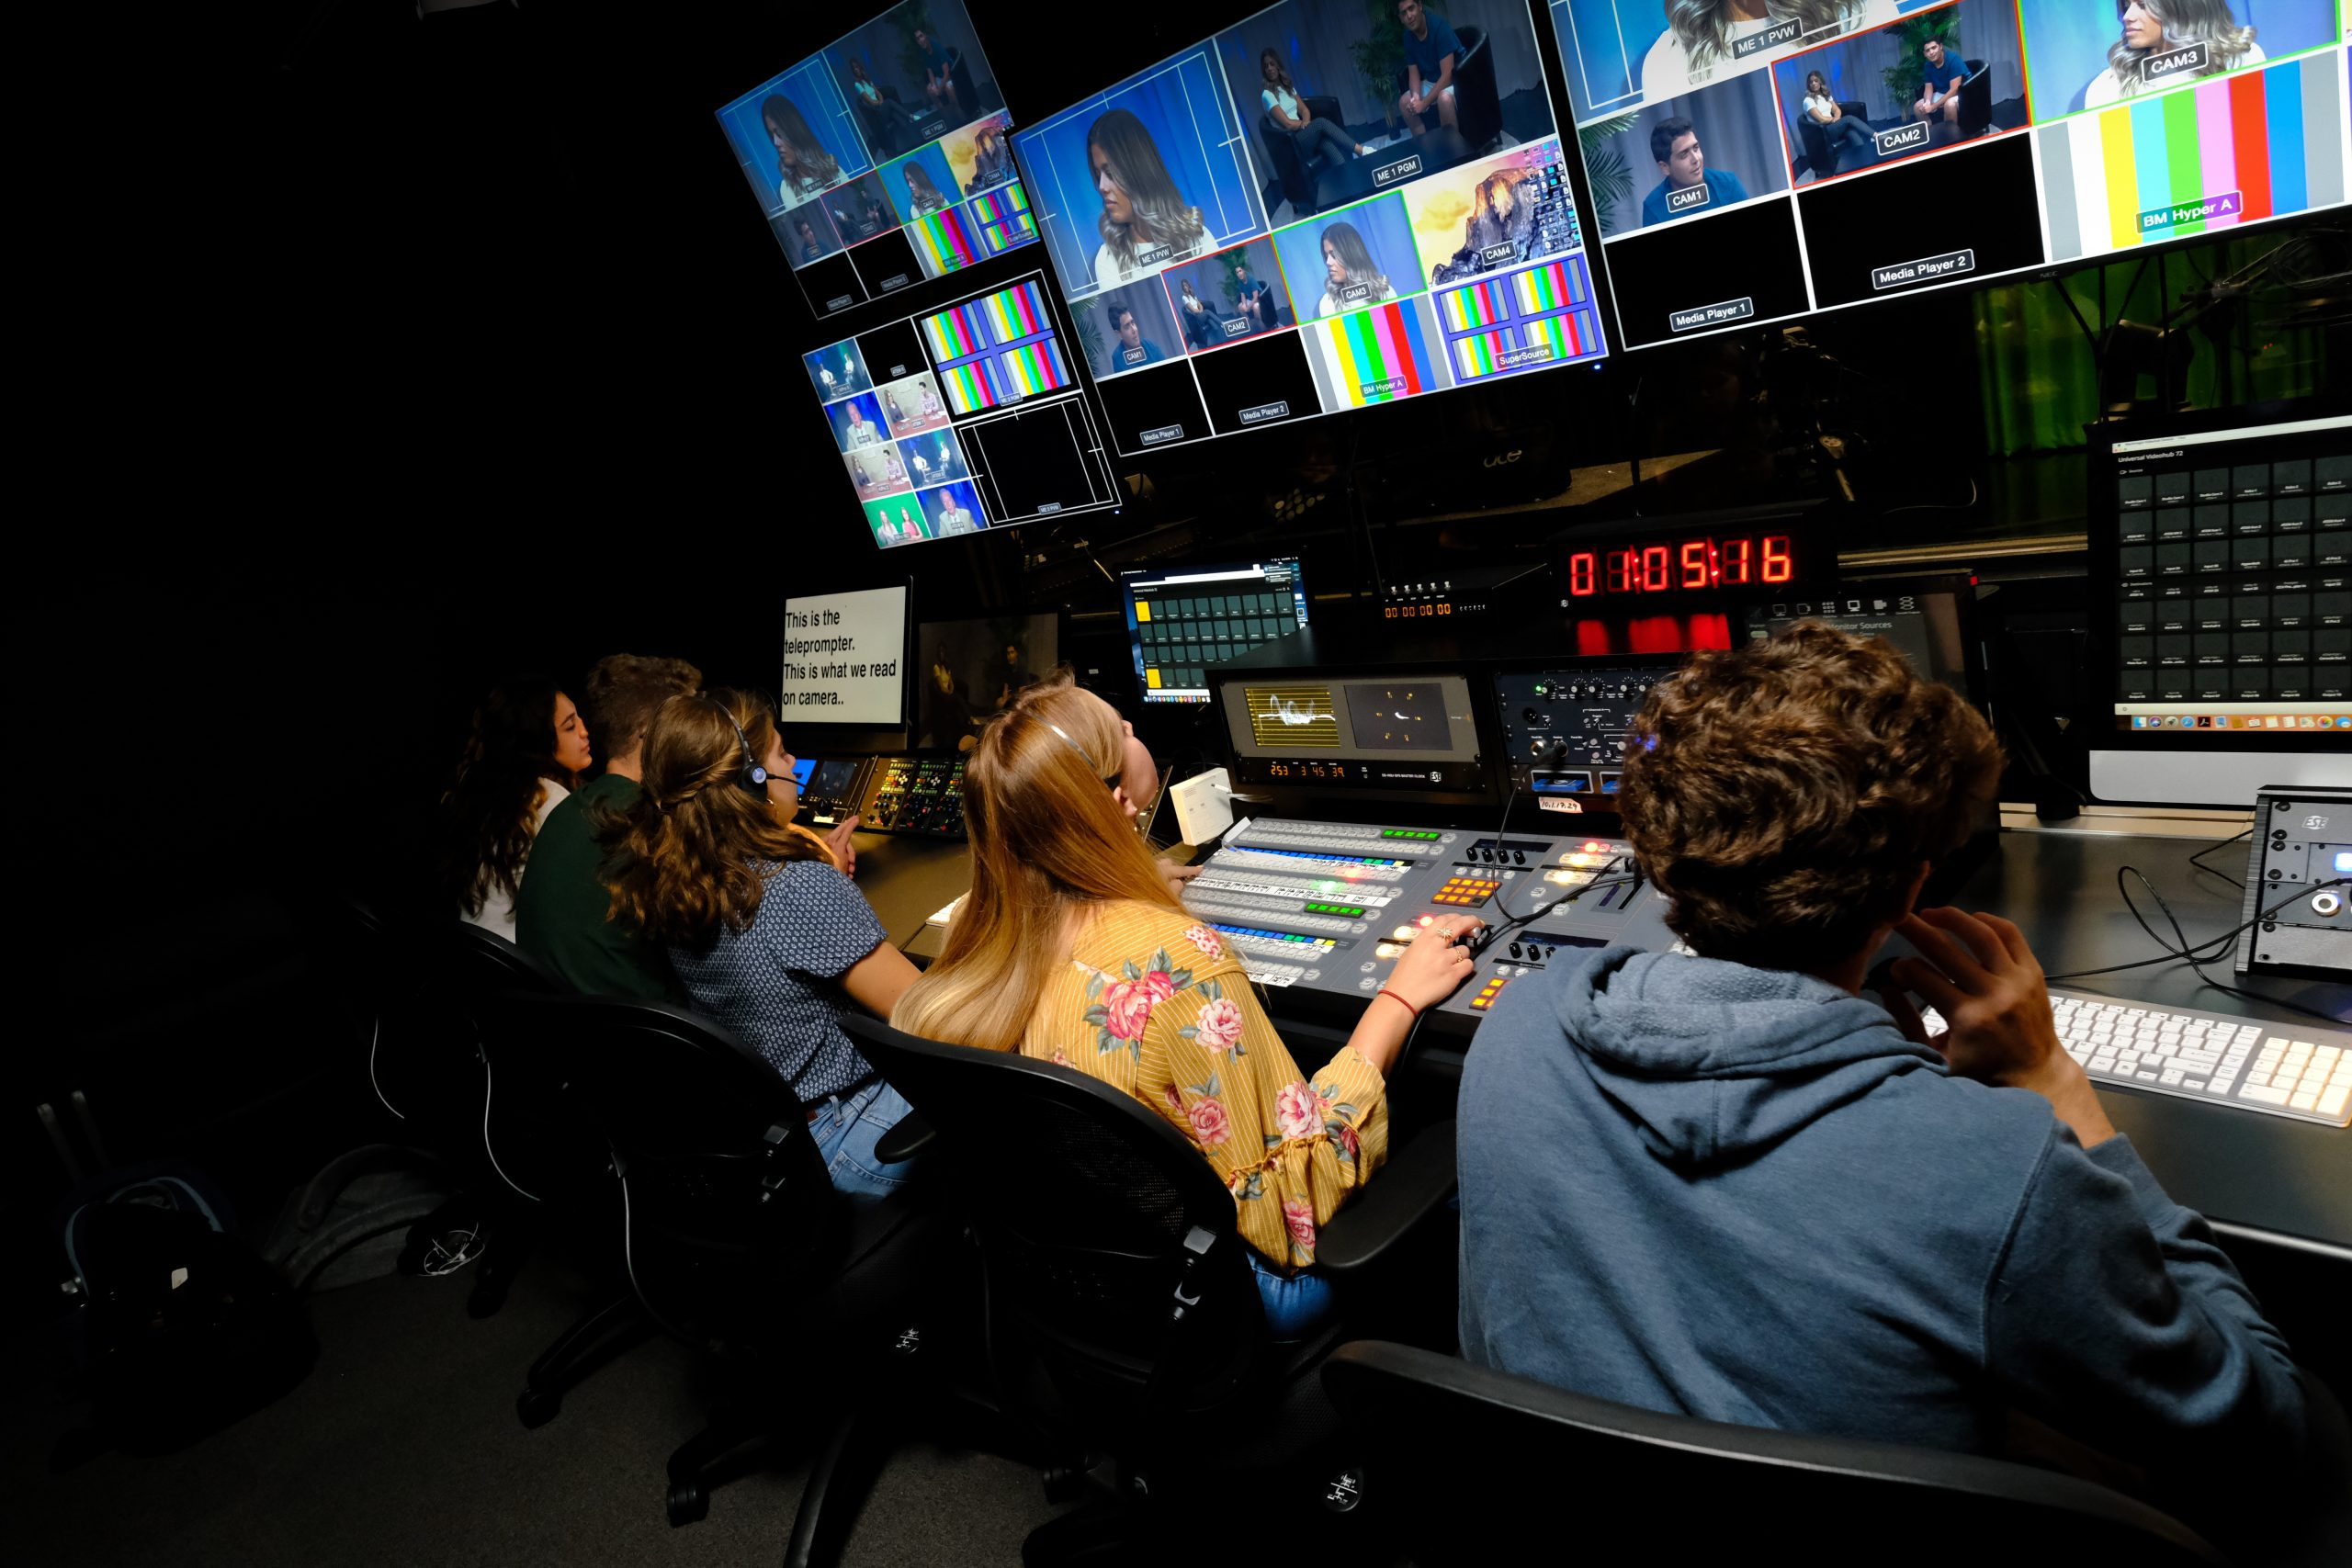 Students in the broadcast center control room